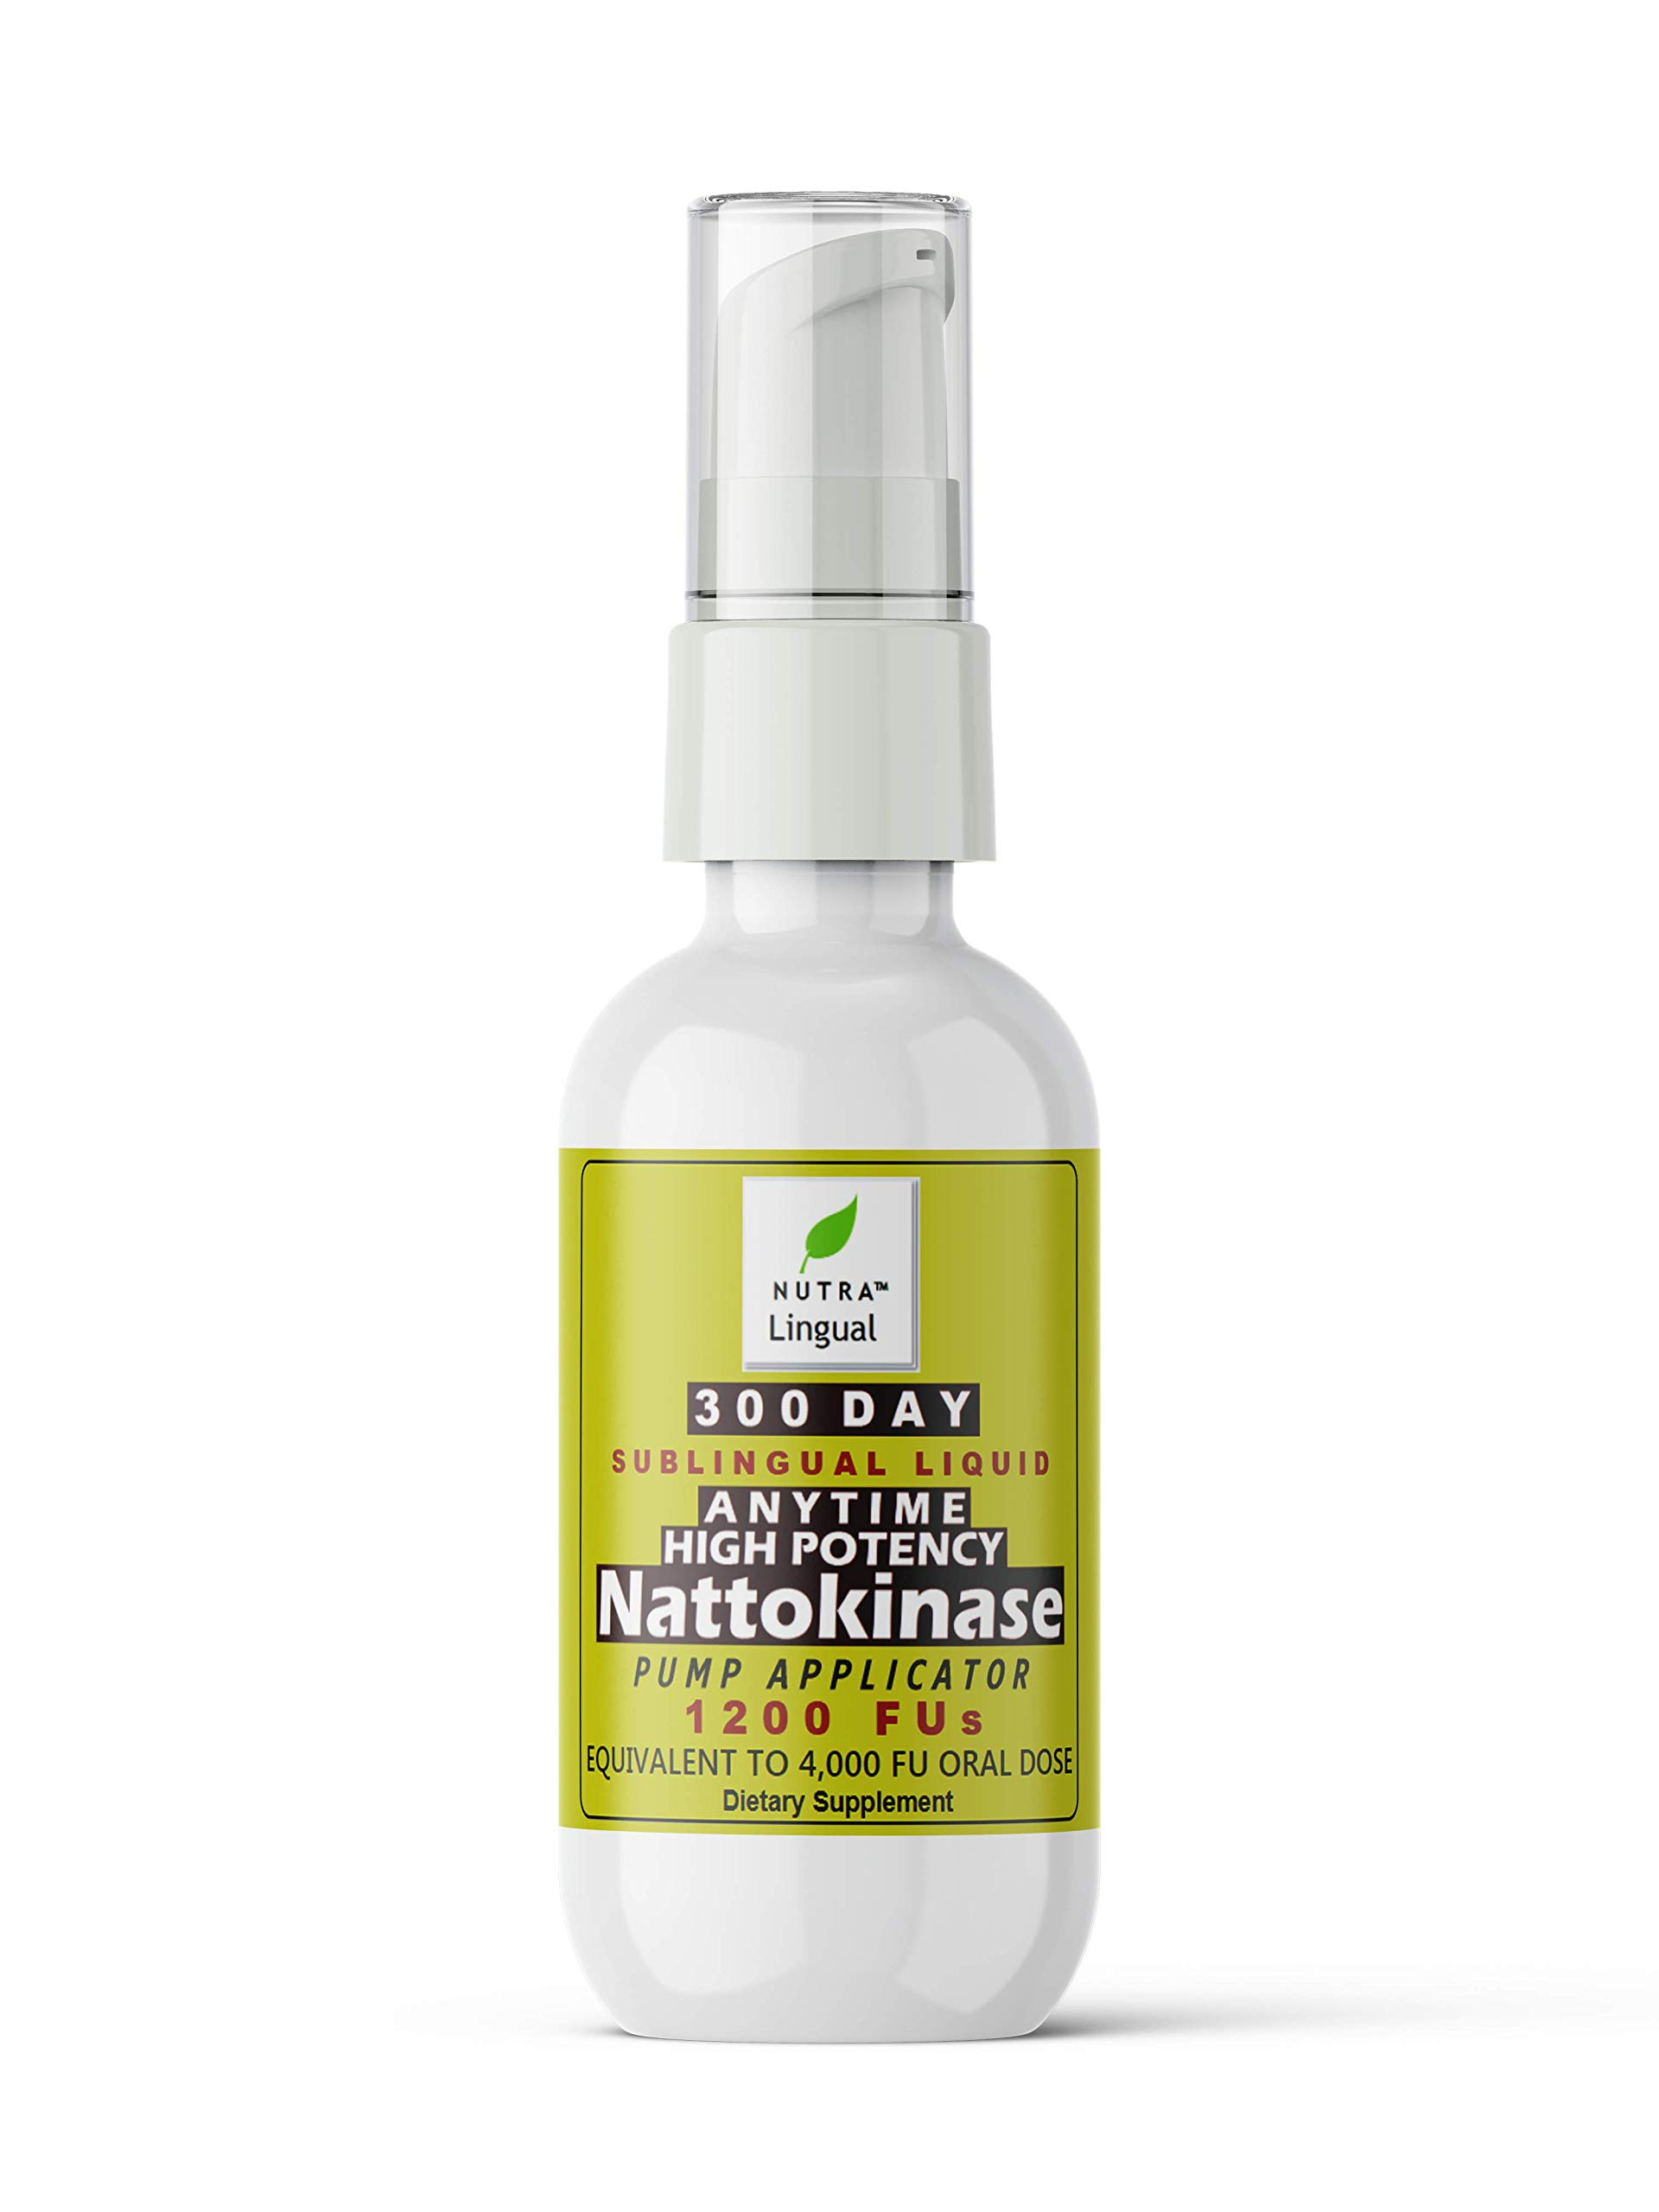 Anytime Nattokinase—High Potency—1,200 FUs (Equivalent to 4,000 FUs Oral Dose), Premium 300 Day Sublingual Liquid Supplement -TAKE Anytime, NO Fasting OR Empty Stomach Required!!